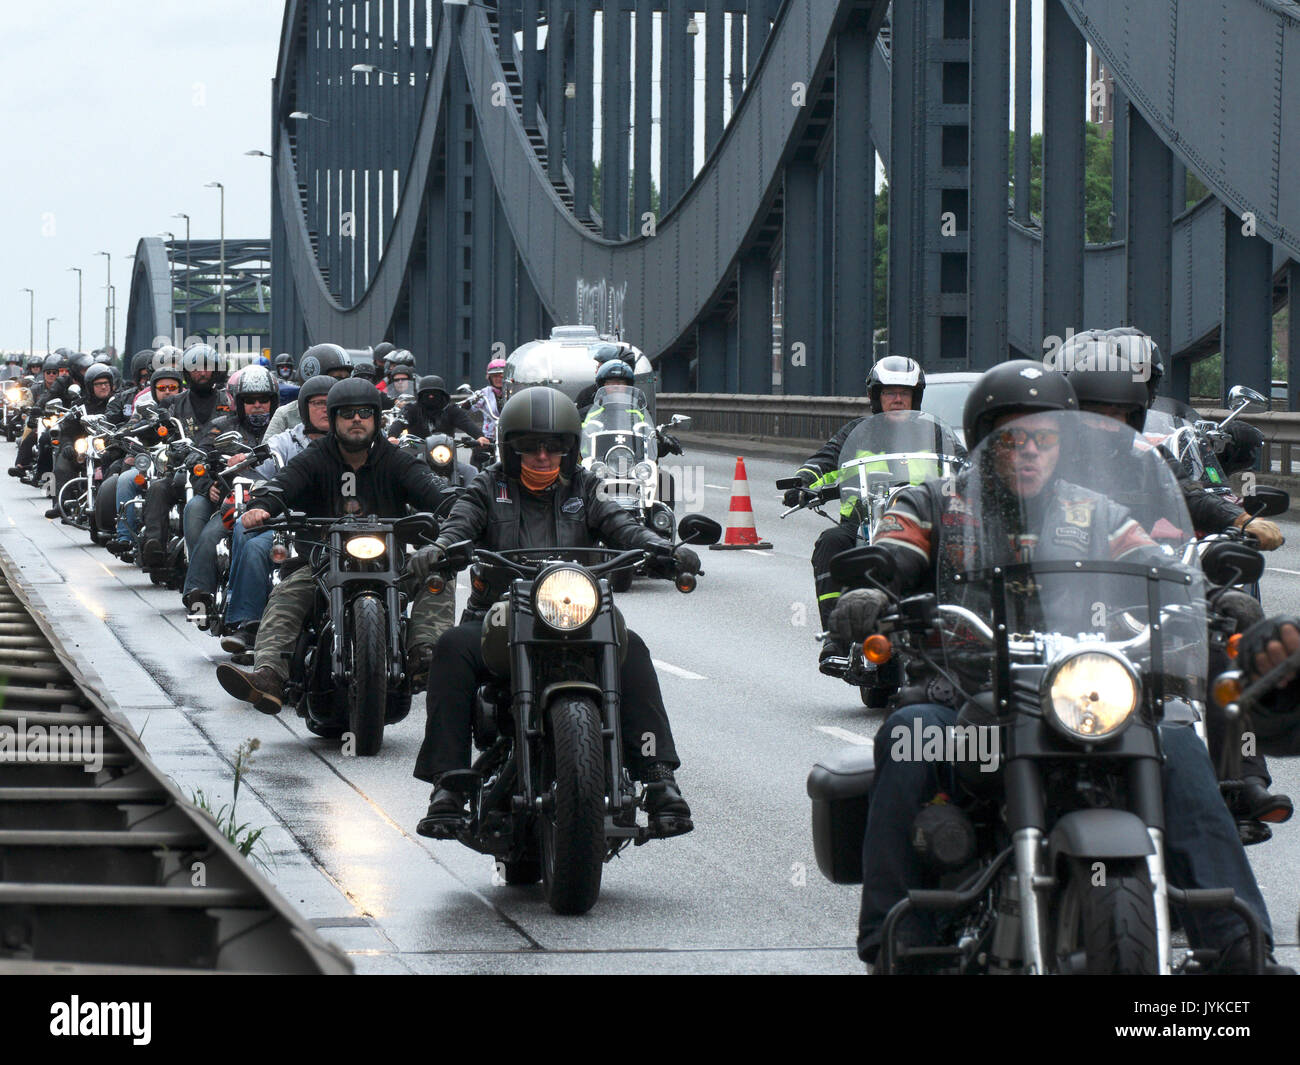 Hamburg Harley Days Biker-City-Event big motorbike motorbiker parade Germany Stock Photo